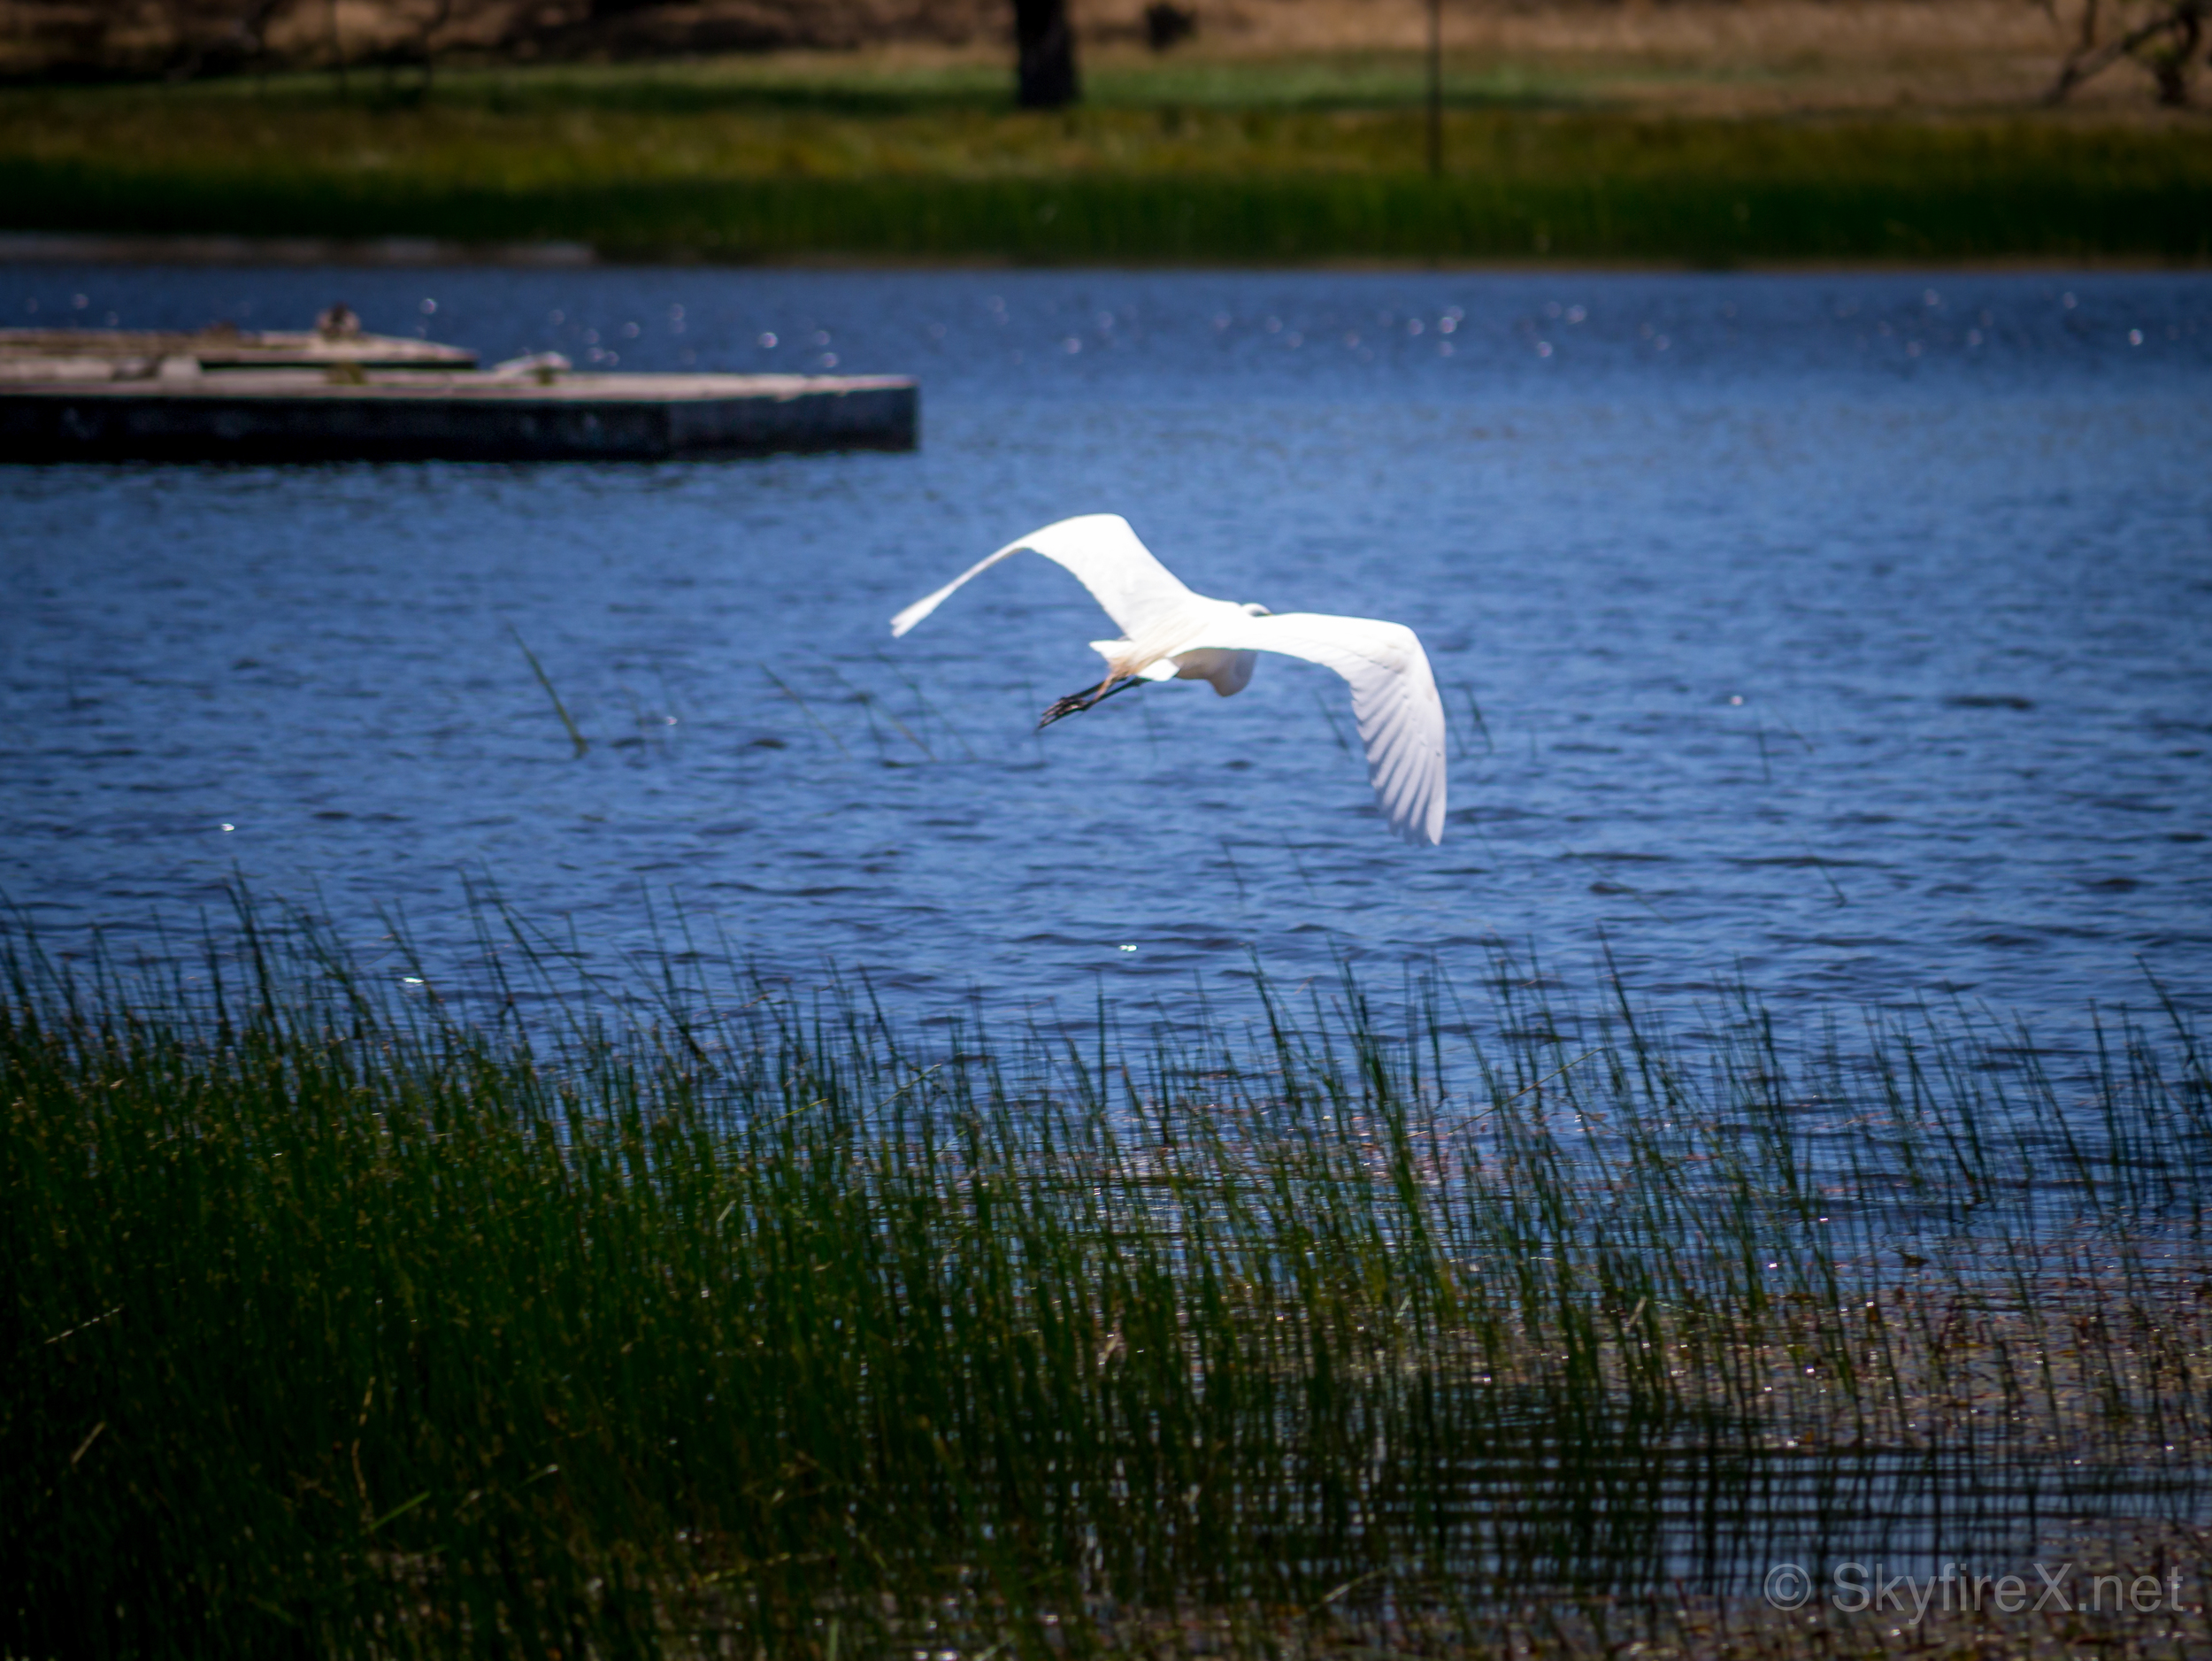 One of the egret denizens of Rockville flies low over the blue lake.